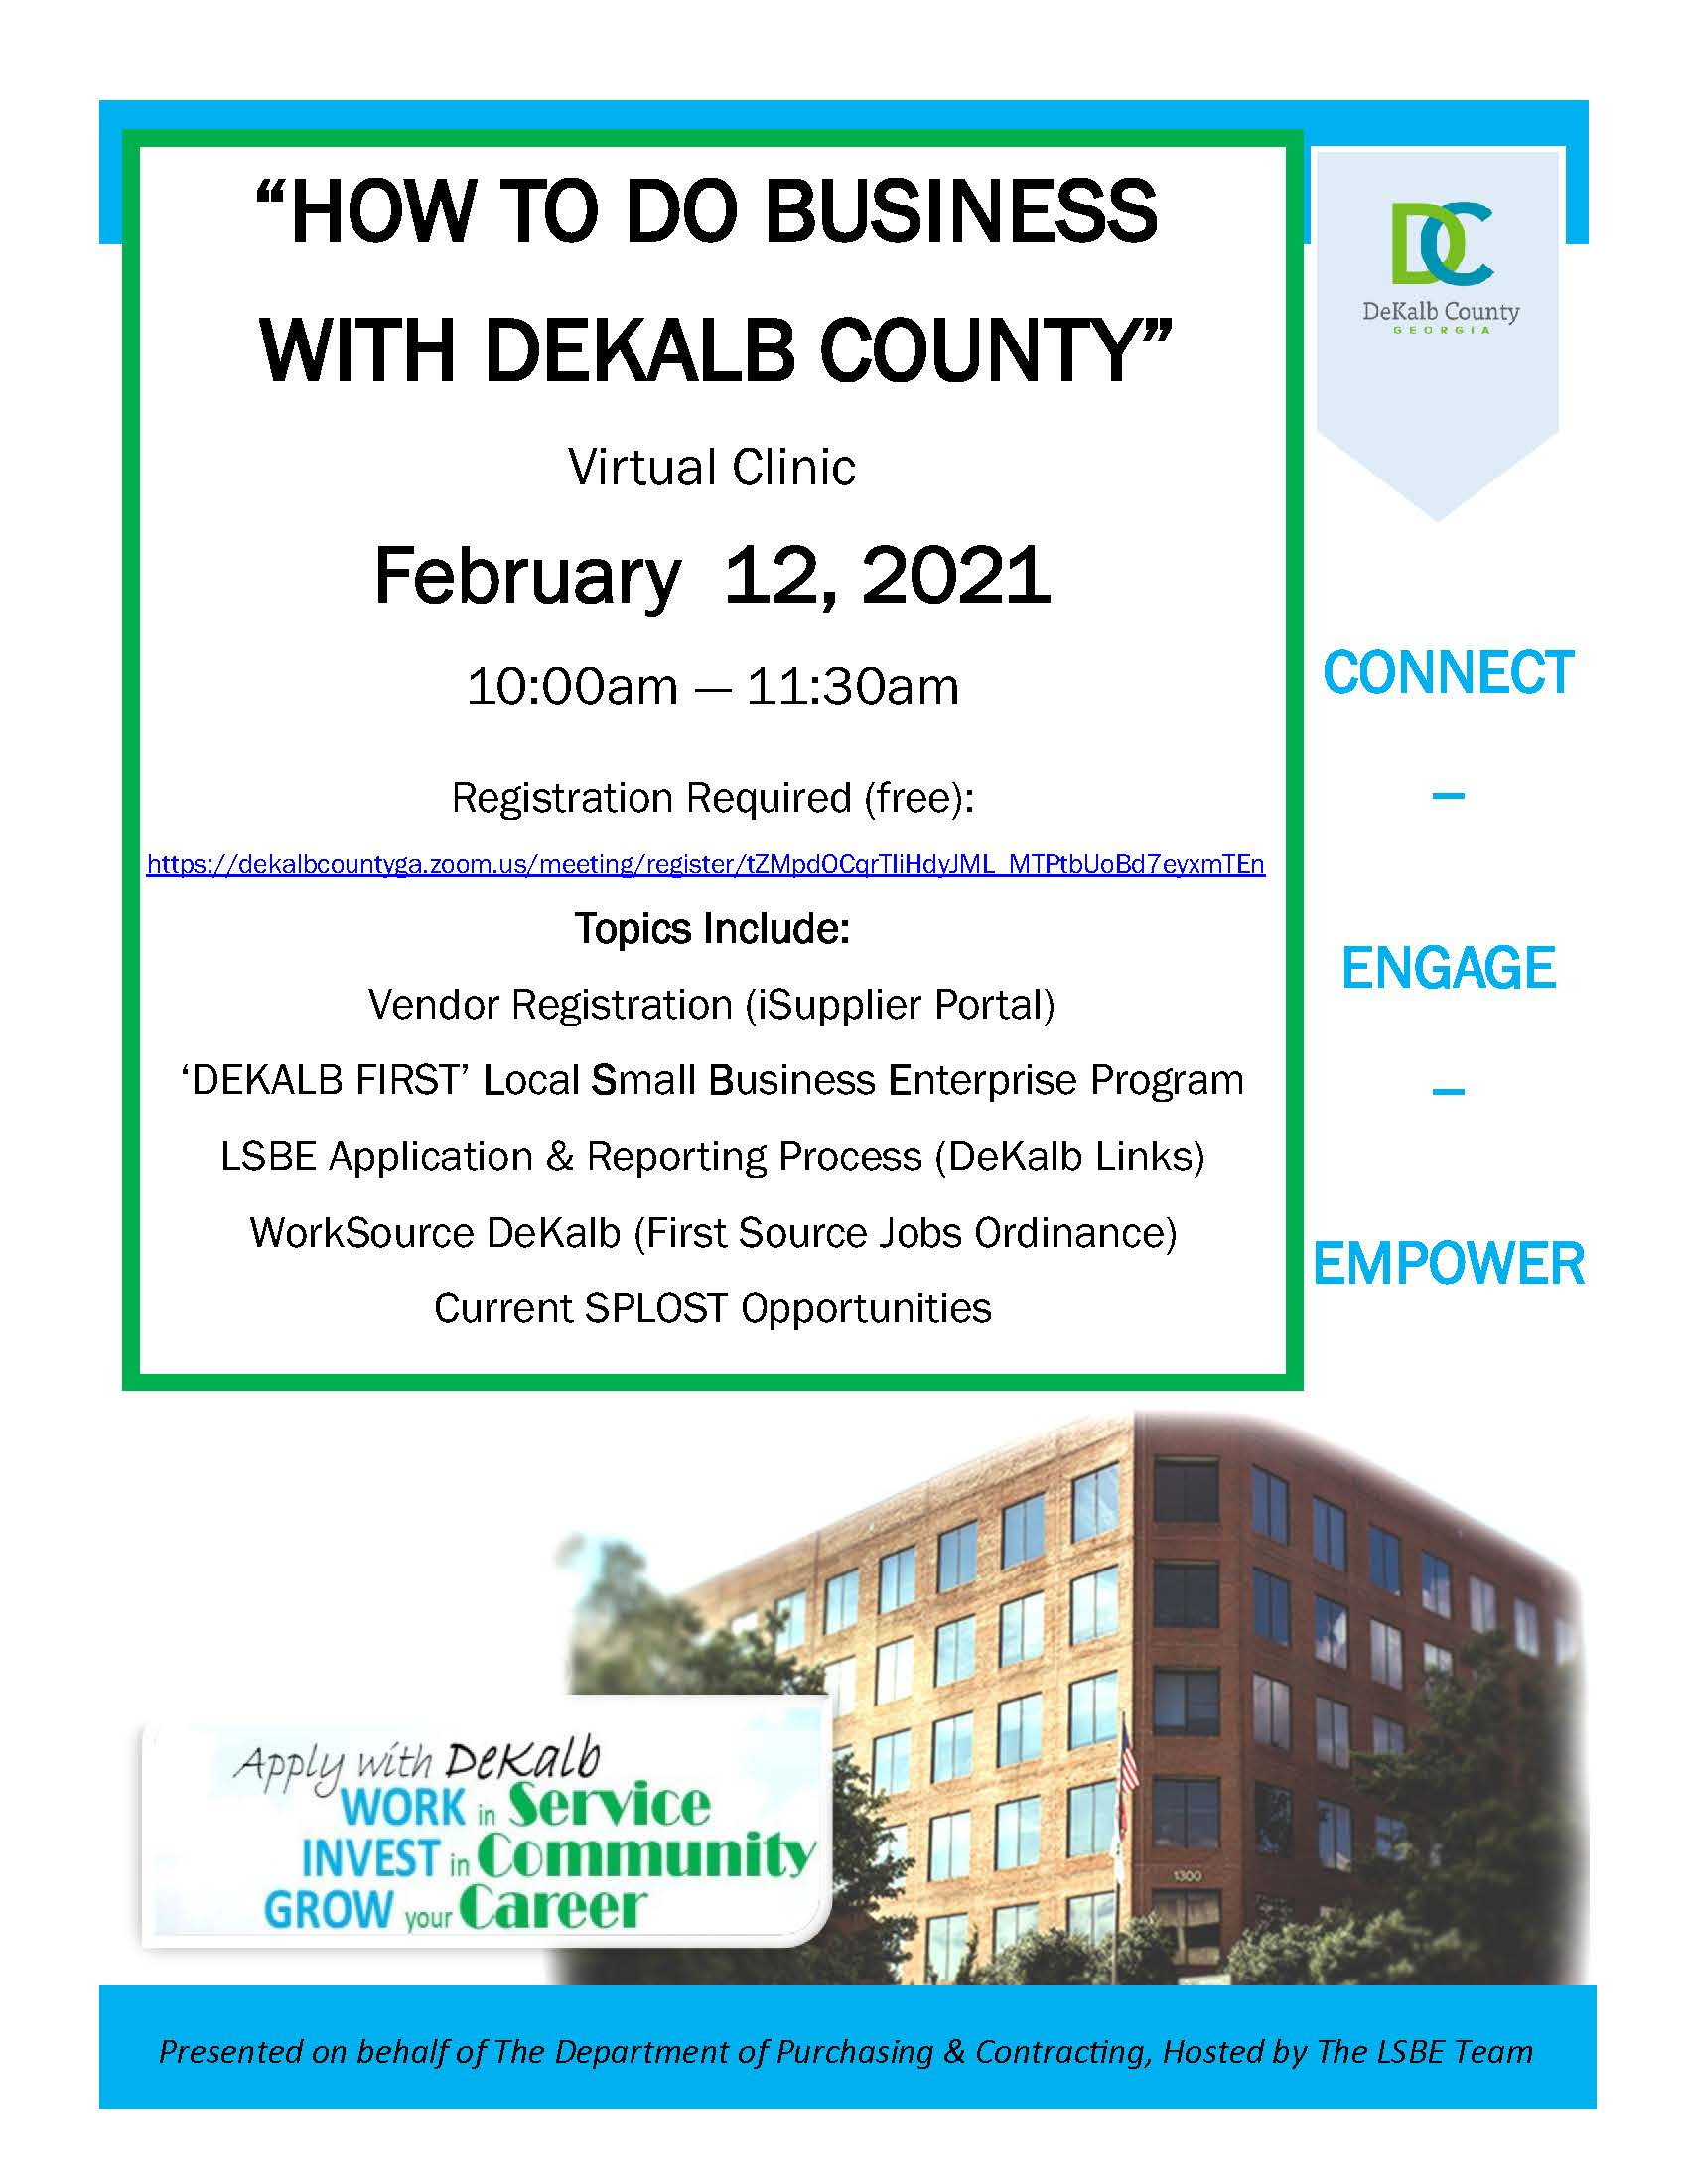 HOW TO DO BUSINESS WITH DEKALB COUNTY